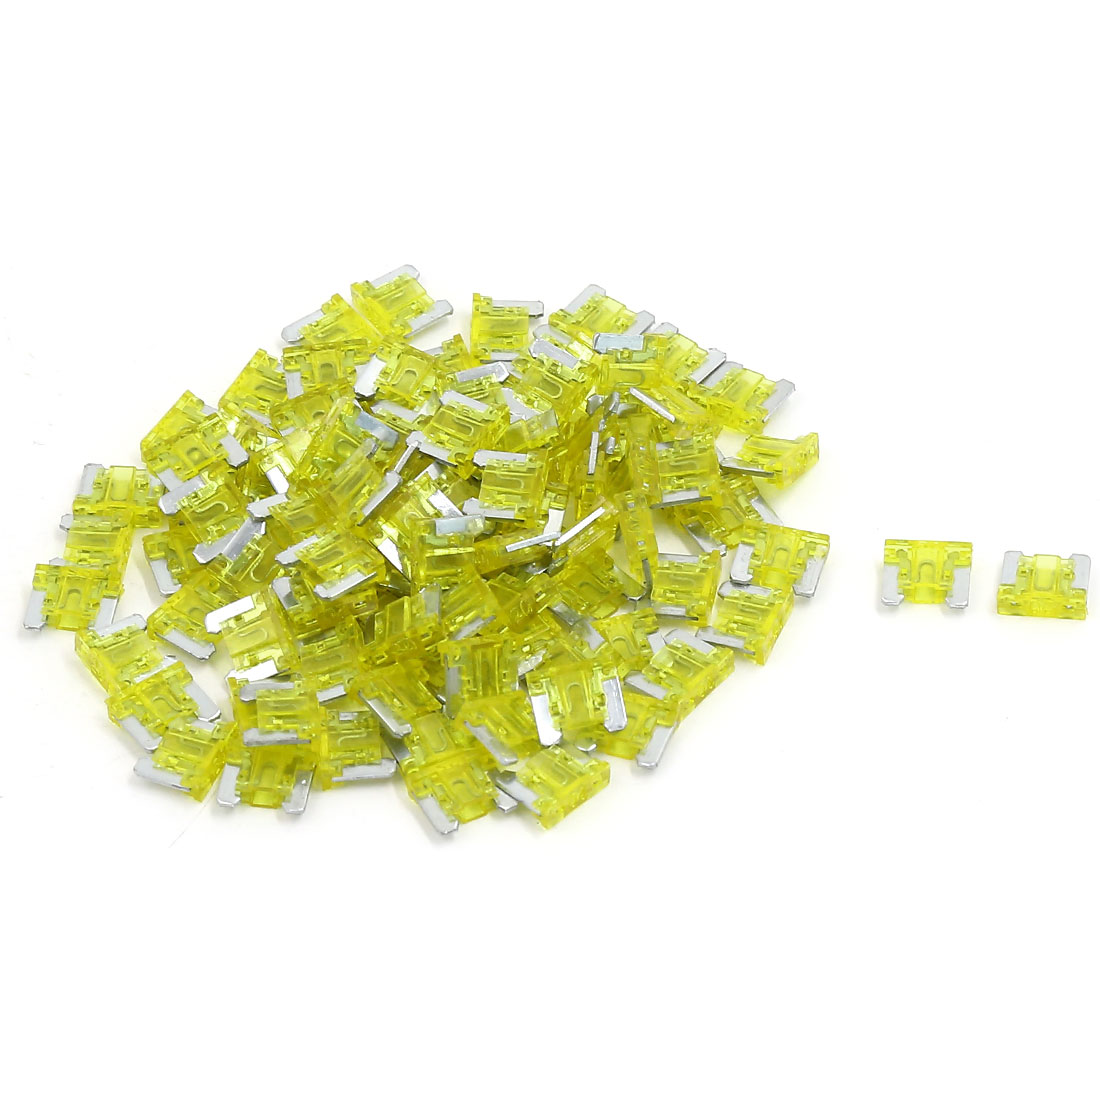 100pcs Yellow Plastic Casing ATC ATO Mini Blade Fuses 20A for Car Truck Auto